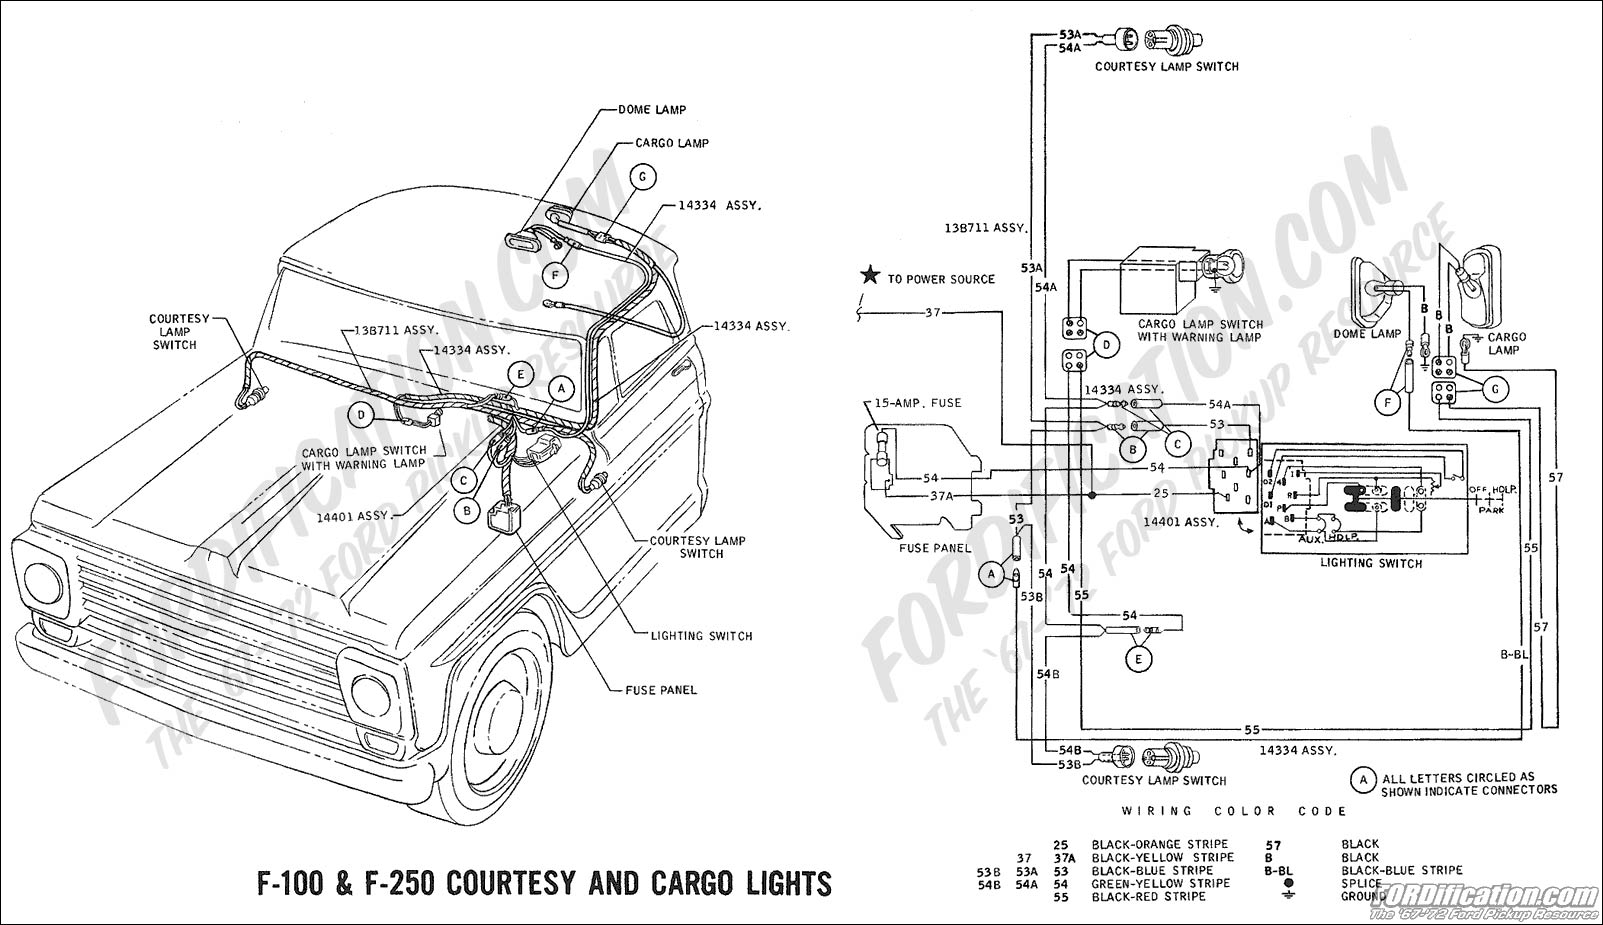 painless wiring harness diagram with Schematics H on 260643716272 furthermore Watch together with 72 Chevy C10 Instrument Cluster Wiring Diagram likewise Chevrolet 2005 C4500 Wiring Diagram together with Painless Lt1 Wiring Harness Craigslist.